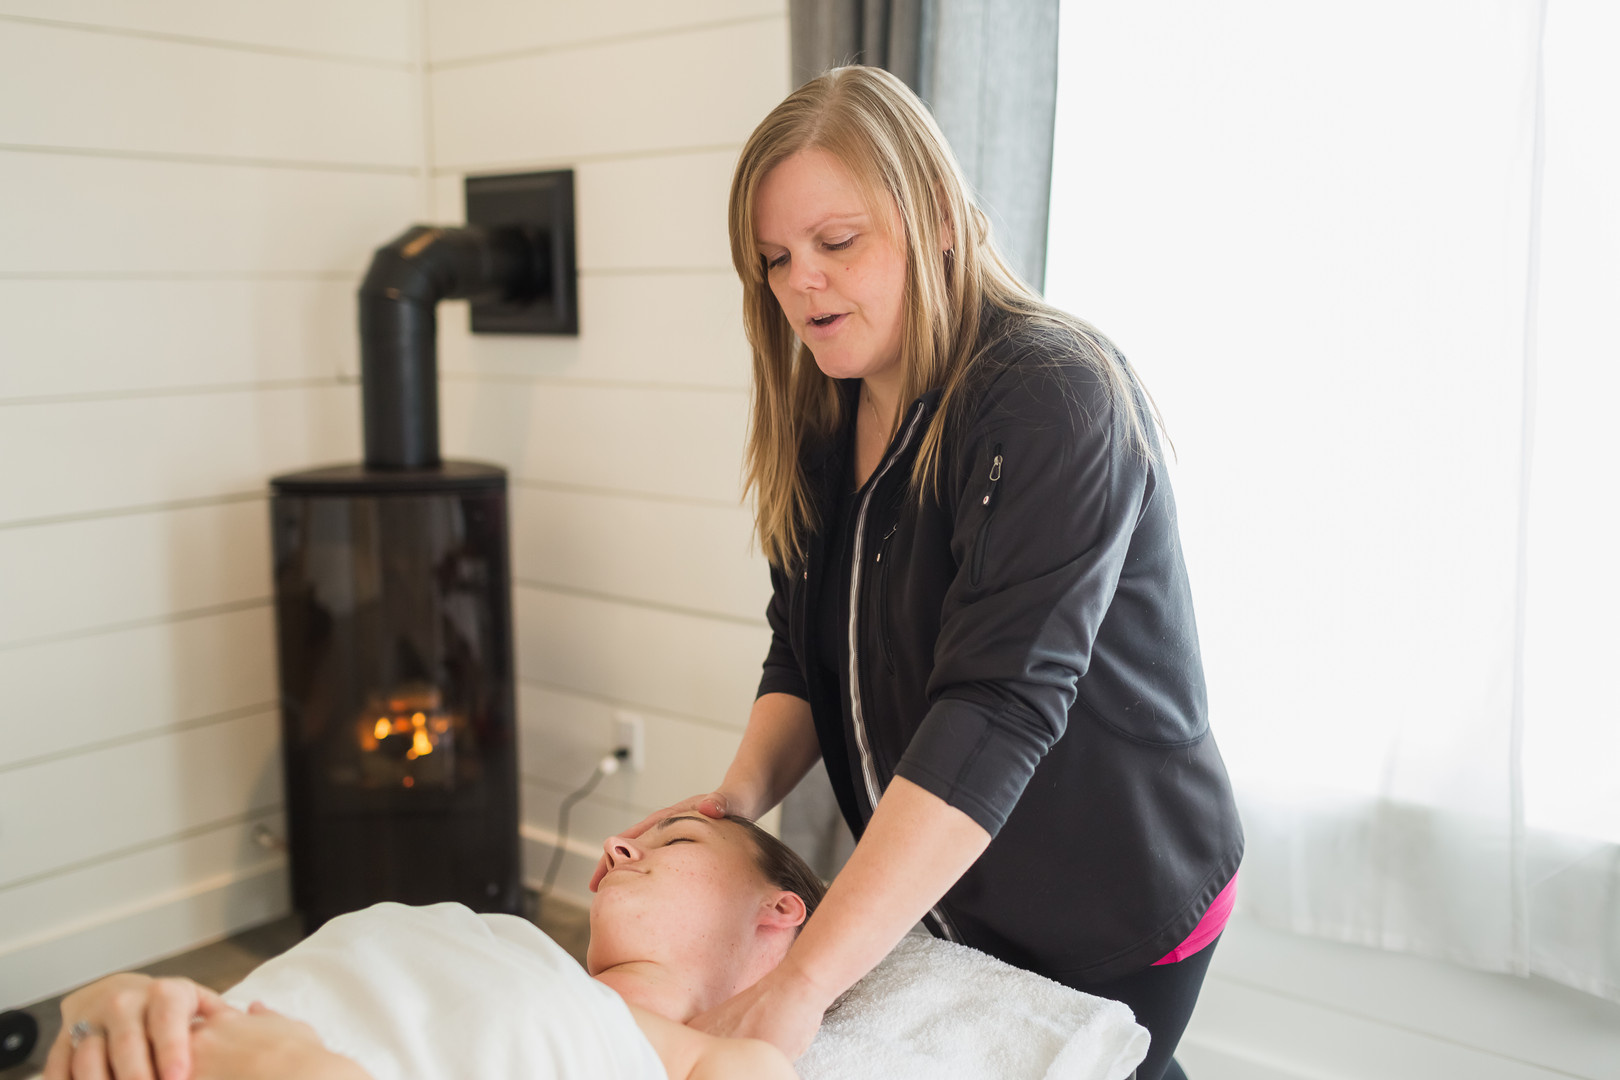 Behind the Scenes shot with a client for a massage therapist's personal brand photography session